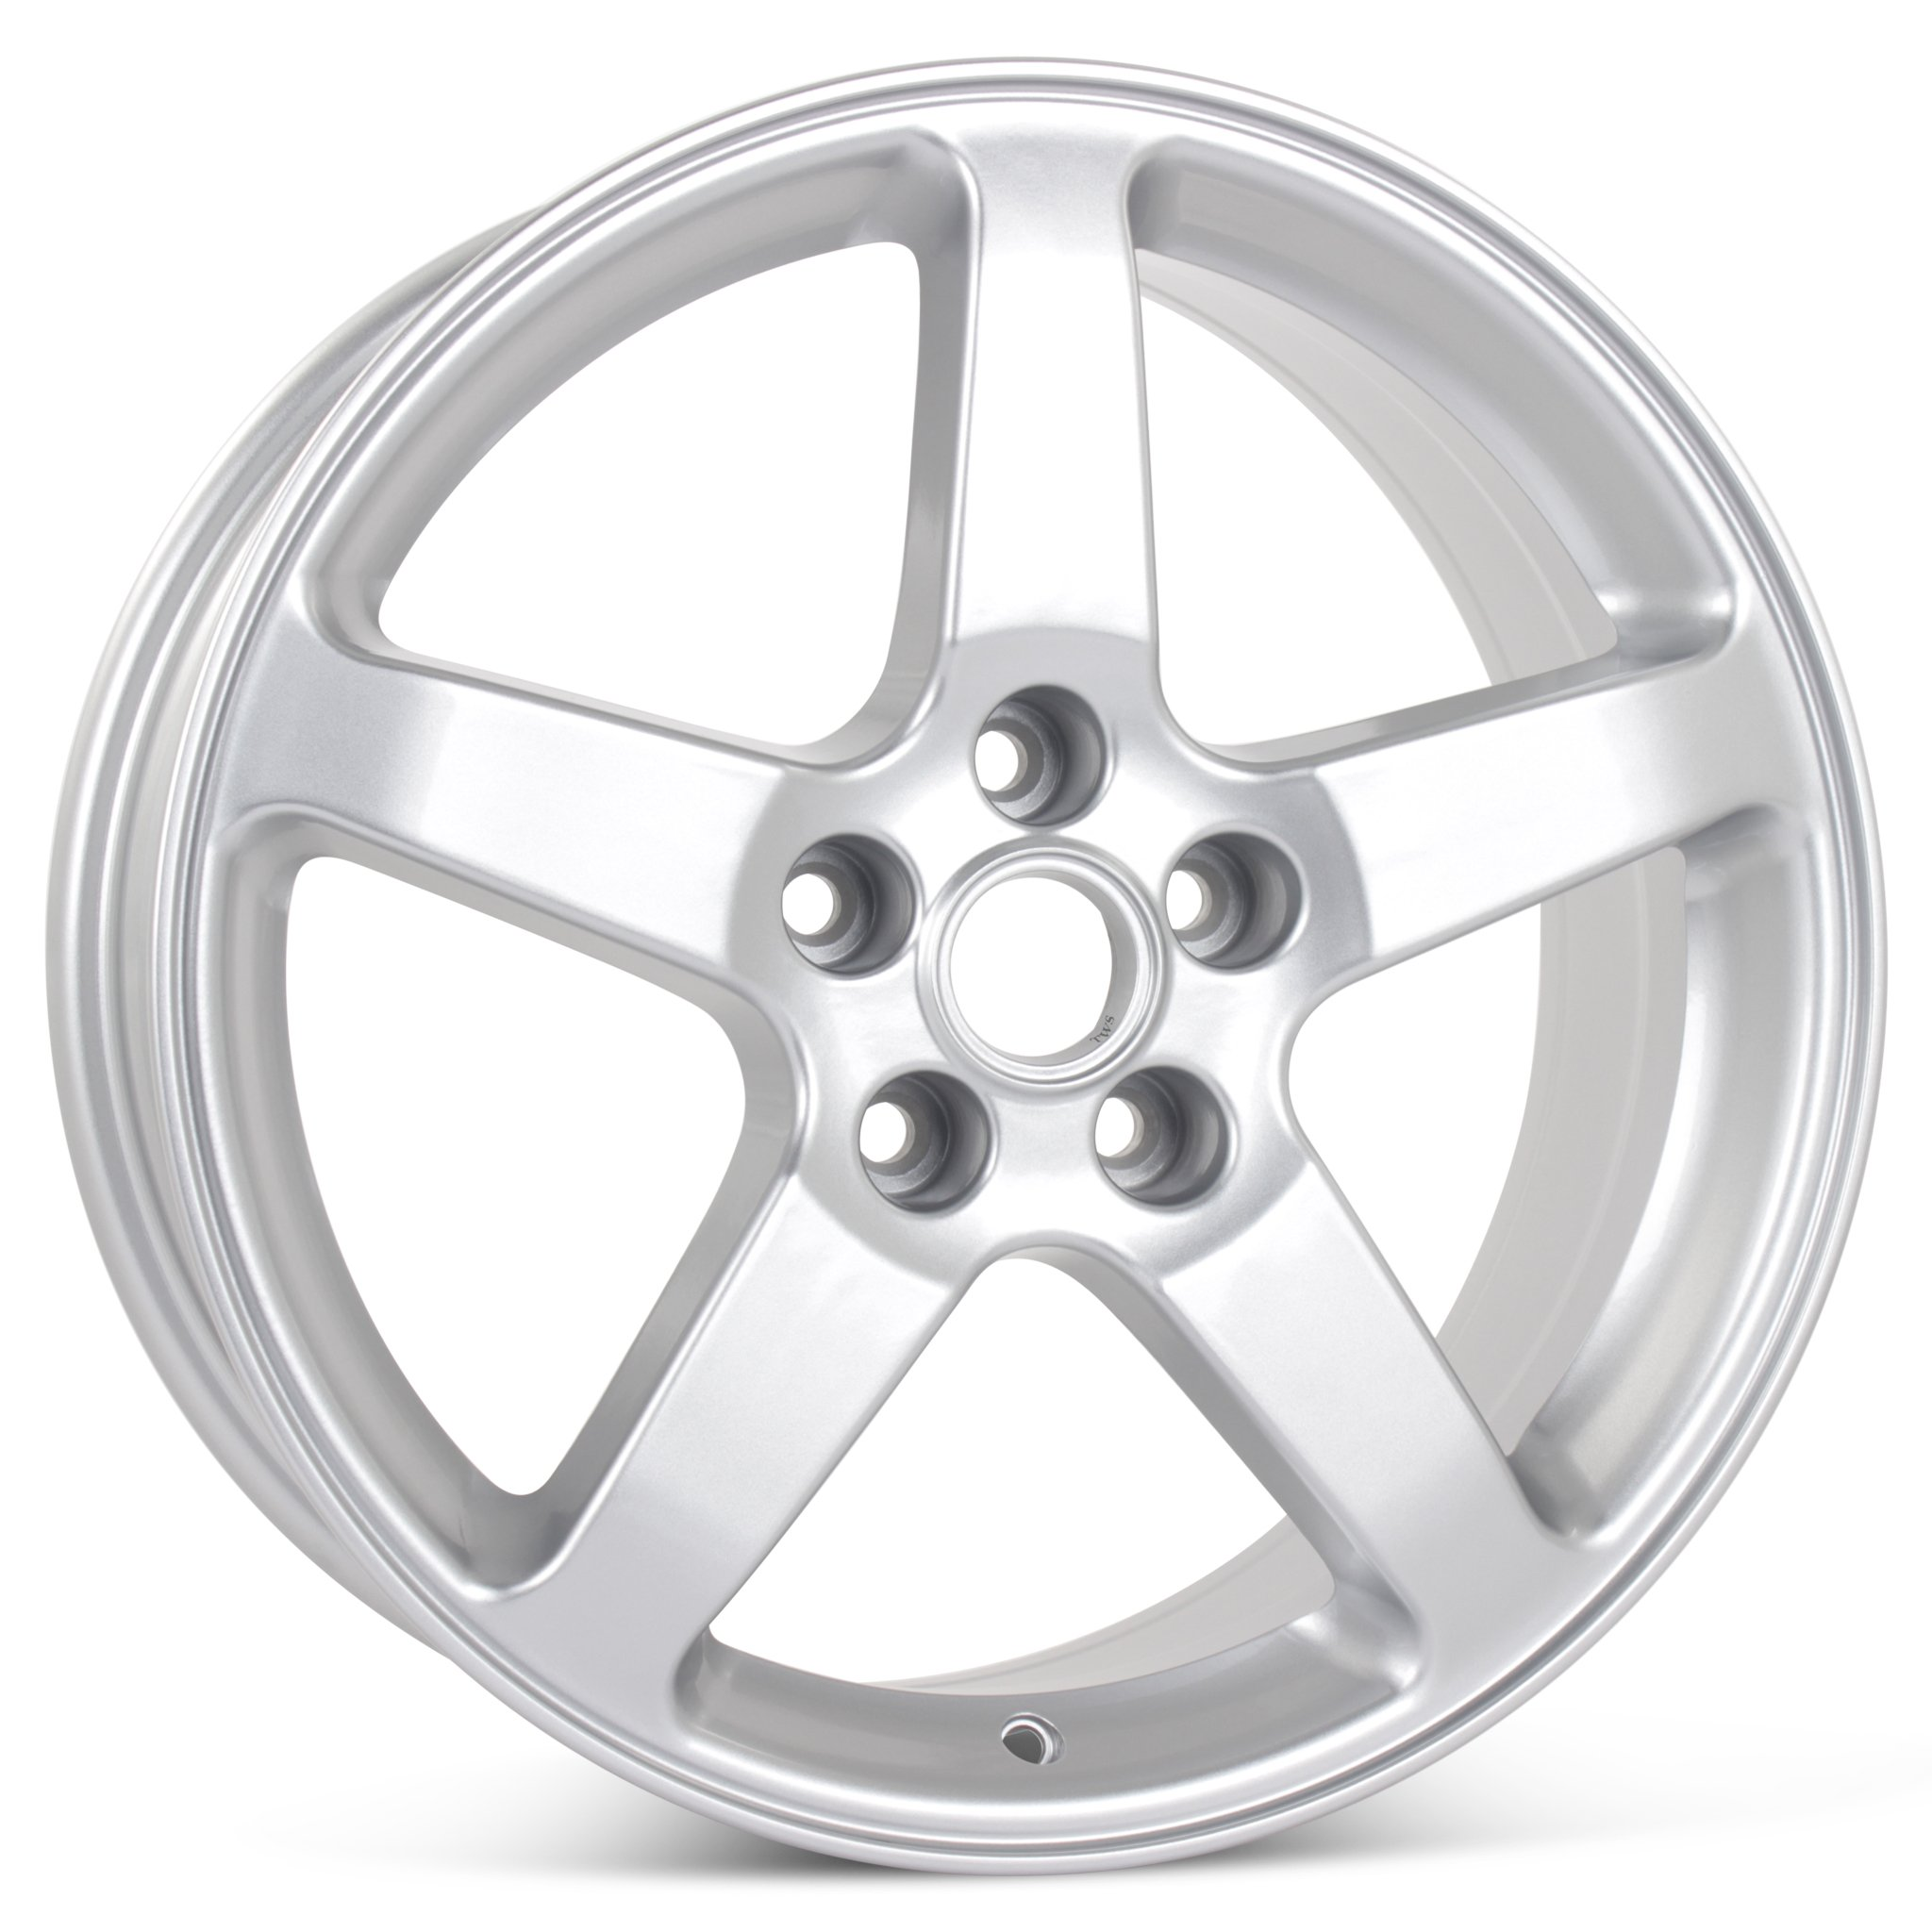 New 17'' Alloy Replacement Wheel for Pontiac G6 2005 2006 2007 2008 2009 Rim 6585